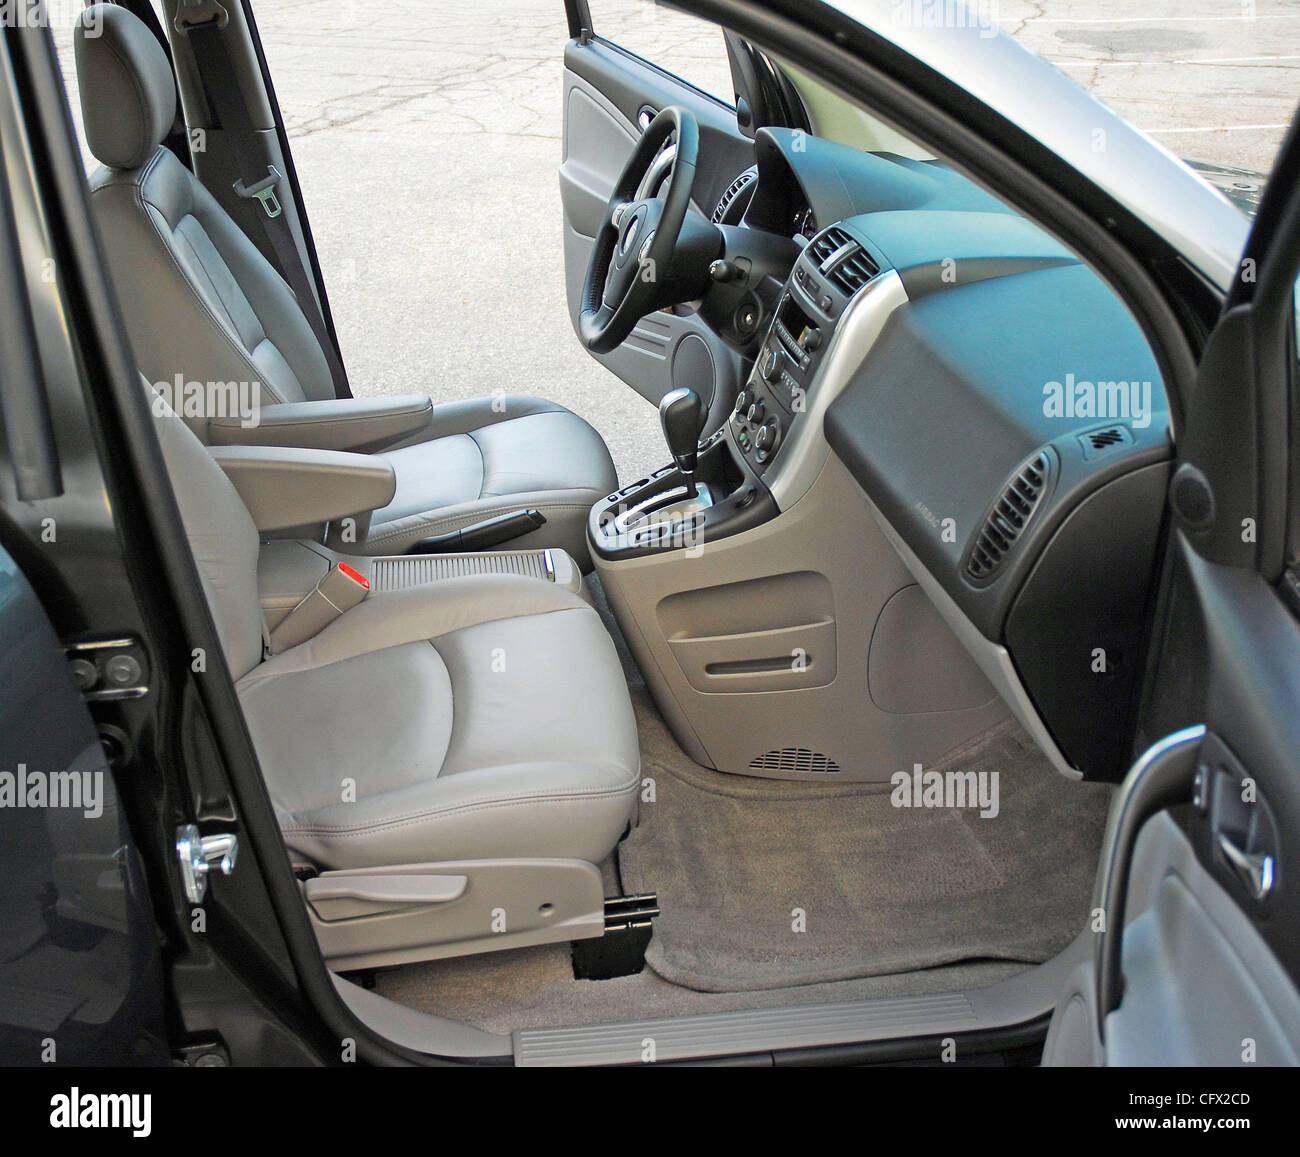 Saturn Vue Stock Photos Images Alamy Electric Power Steering Front Seats 2007 Green Line Hybrid Image